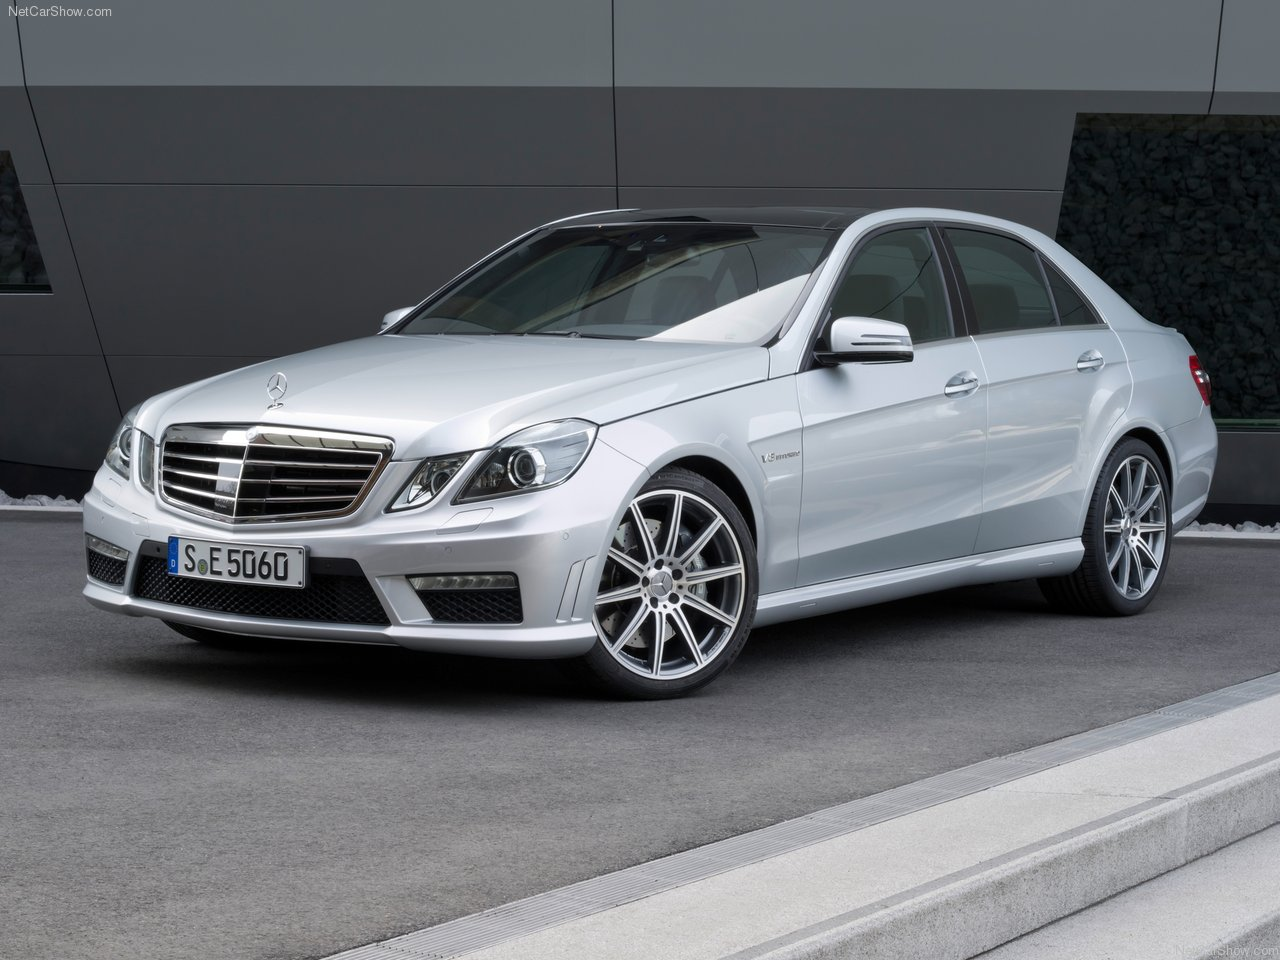 Mercedes-benz E200 2010 photo - 3